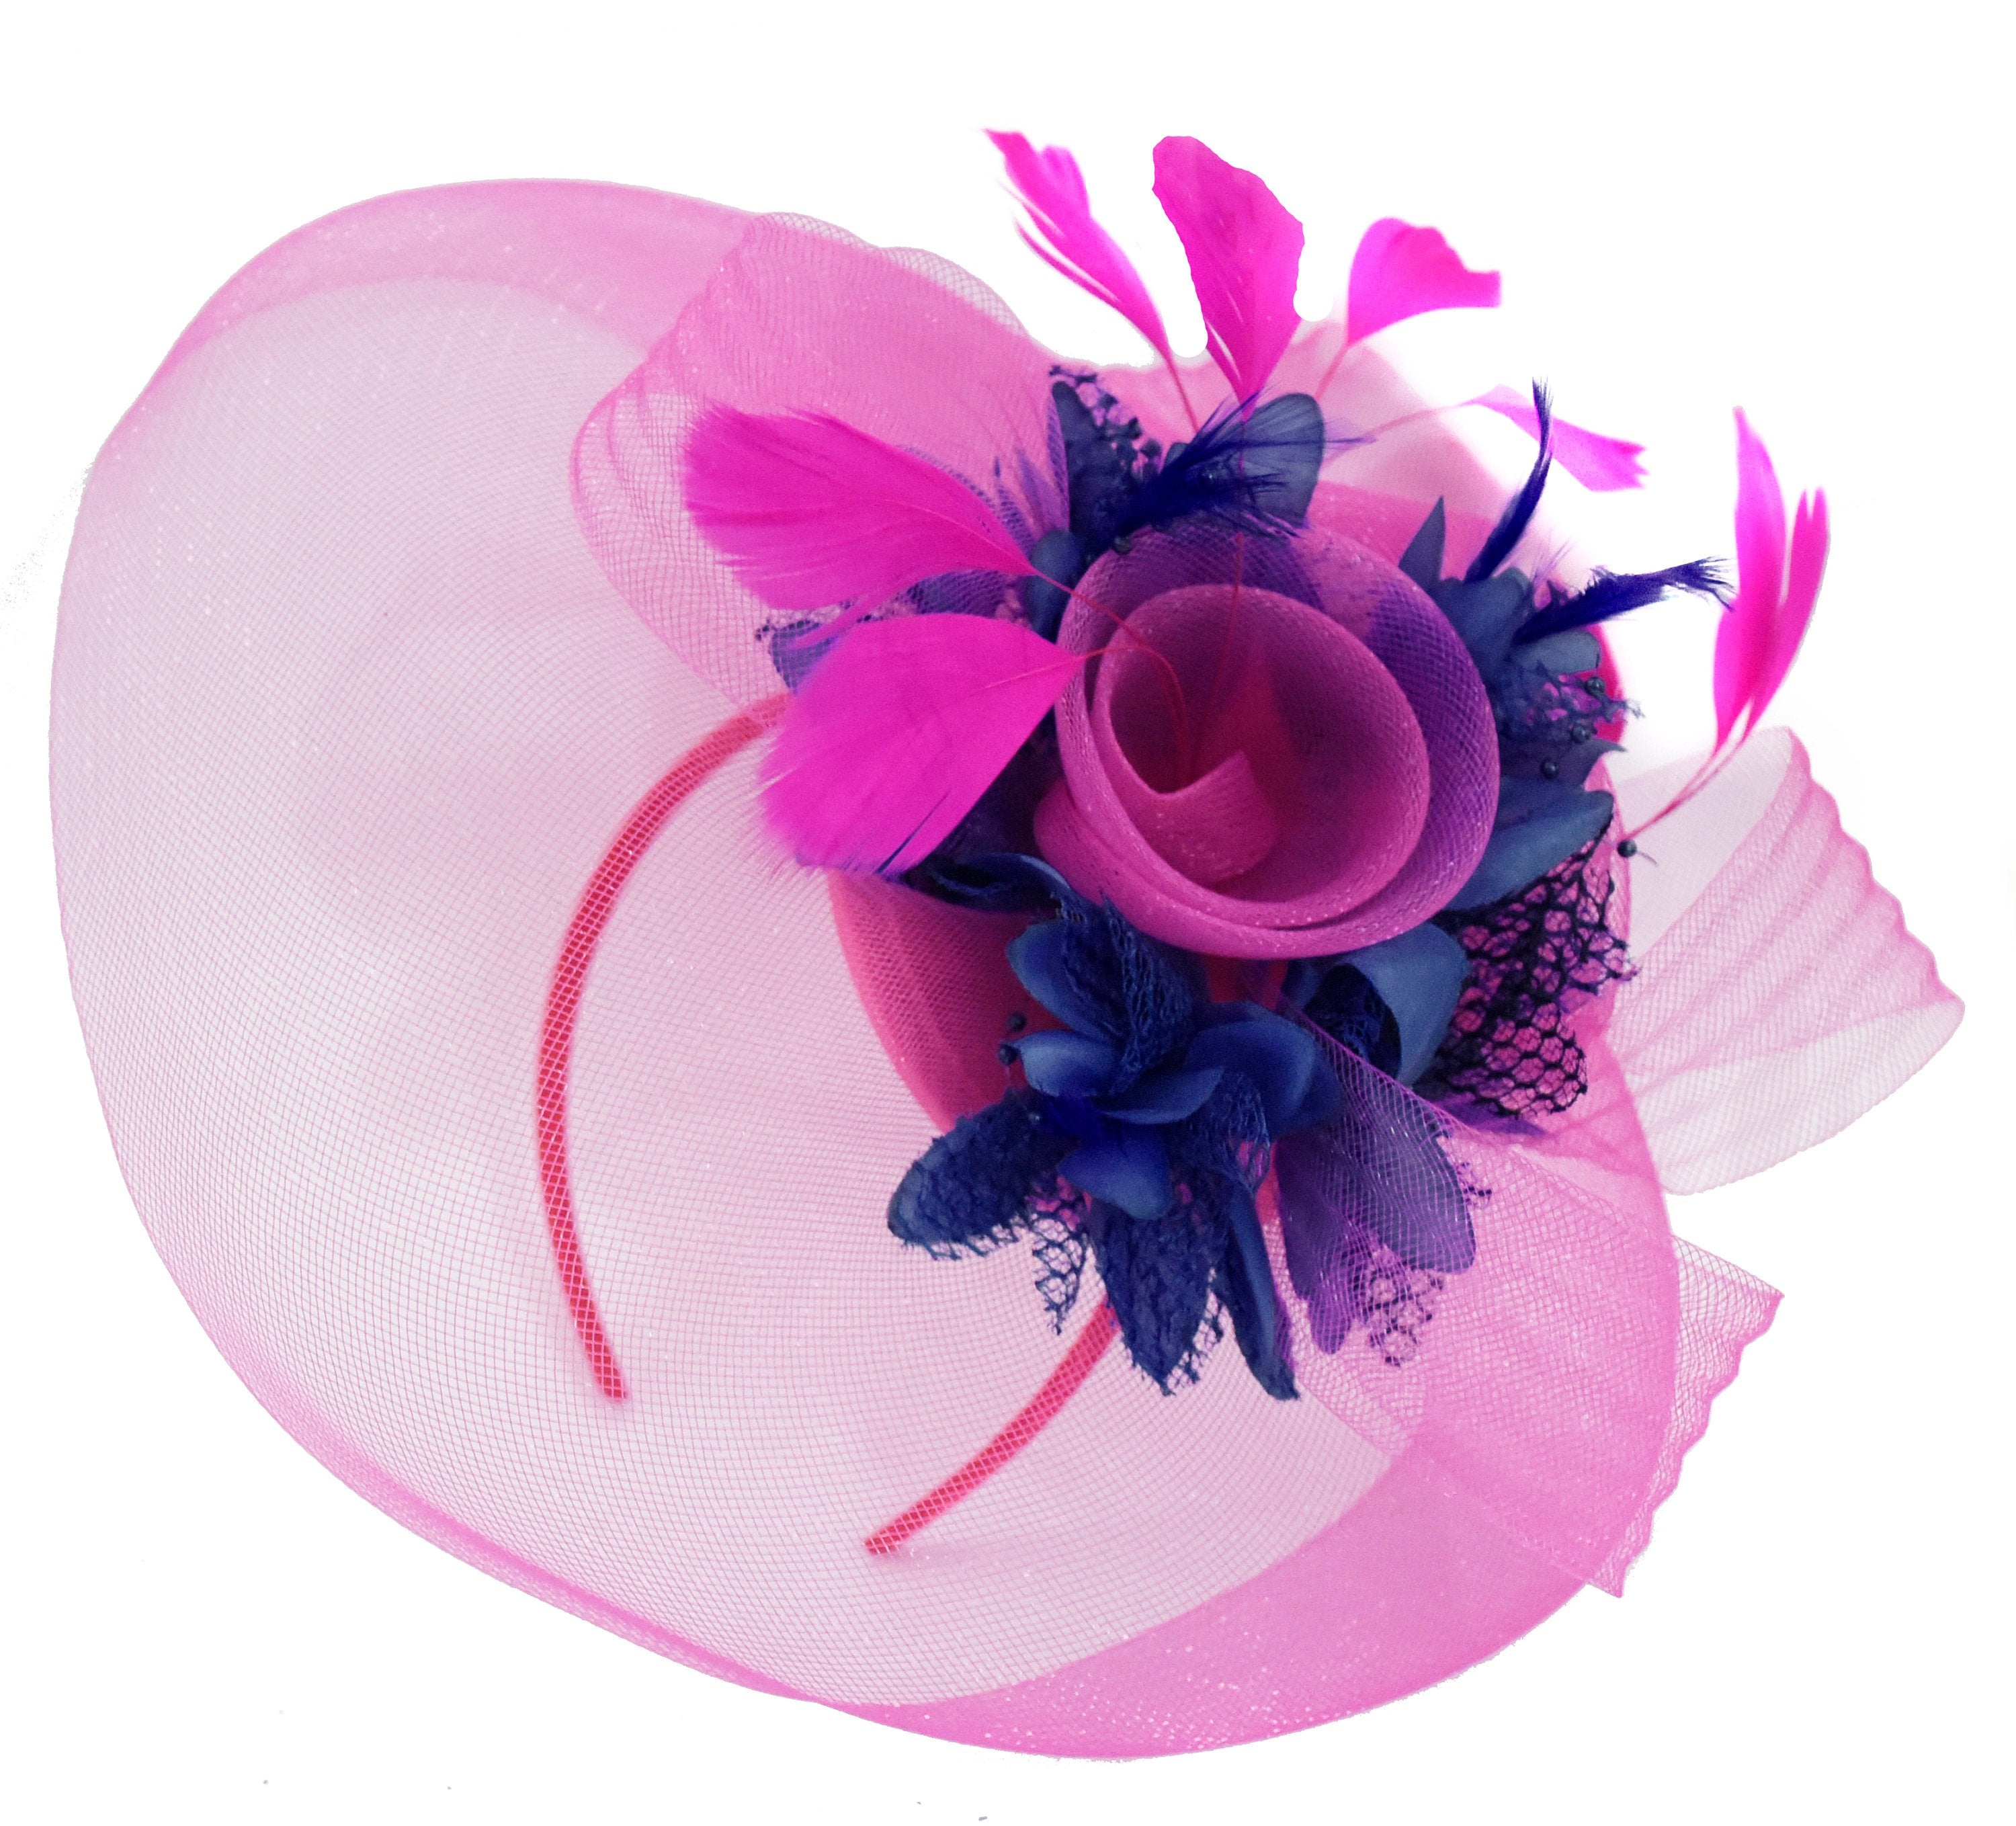 Caprilite Fuchsia Hot Pink and Navy Blue Fascinator Hat Veil Net Hair Clip Ascot Derby Races Wedding Headband Feather Flower